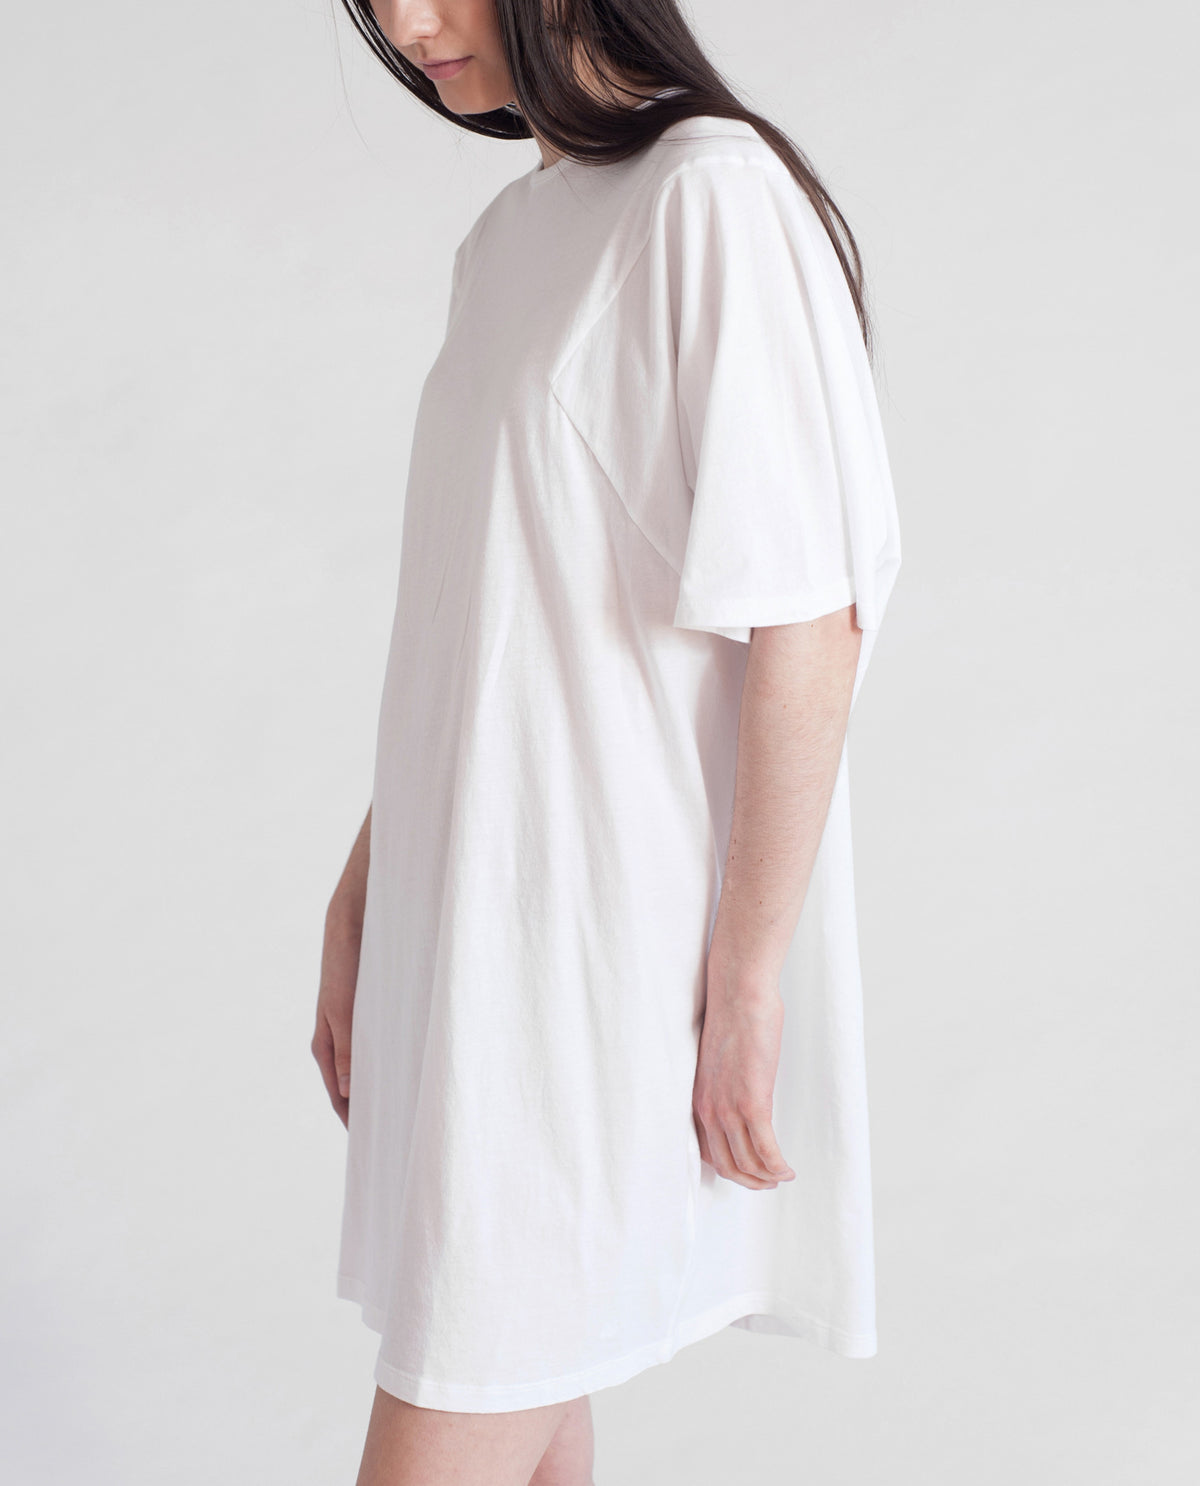 DAISY Organic Cotton Tshirt In White